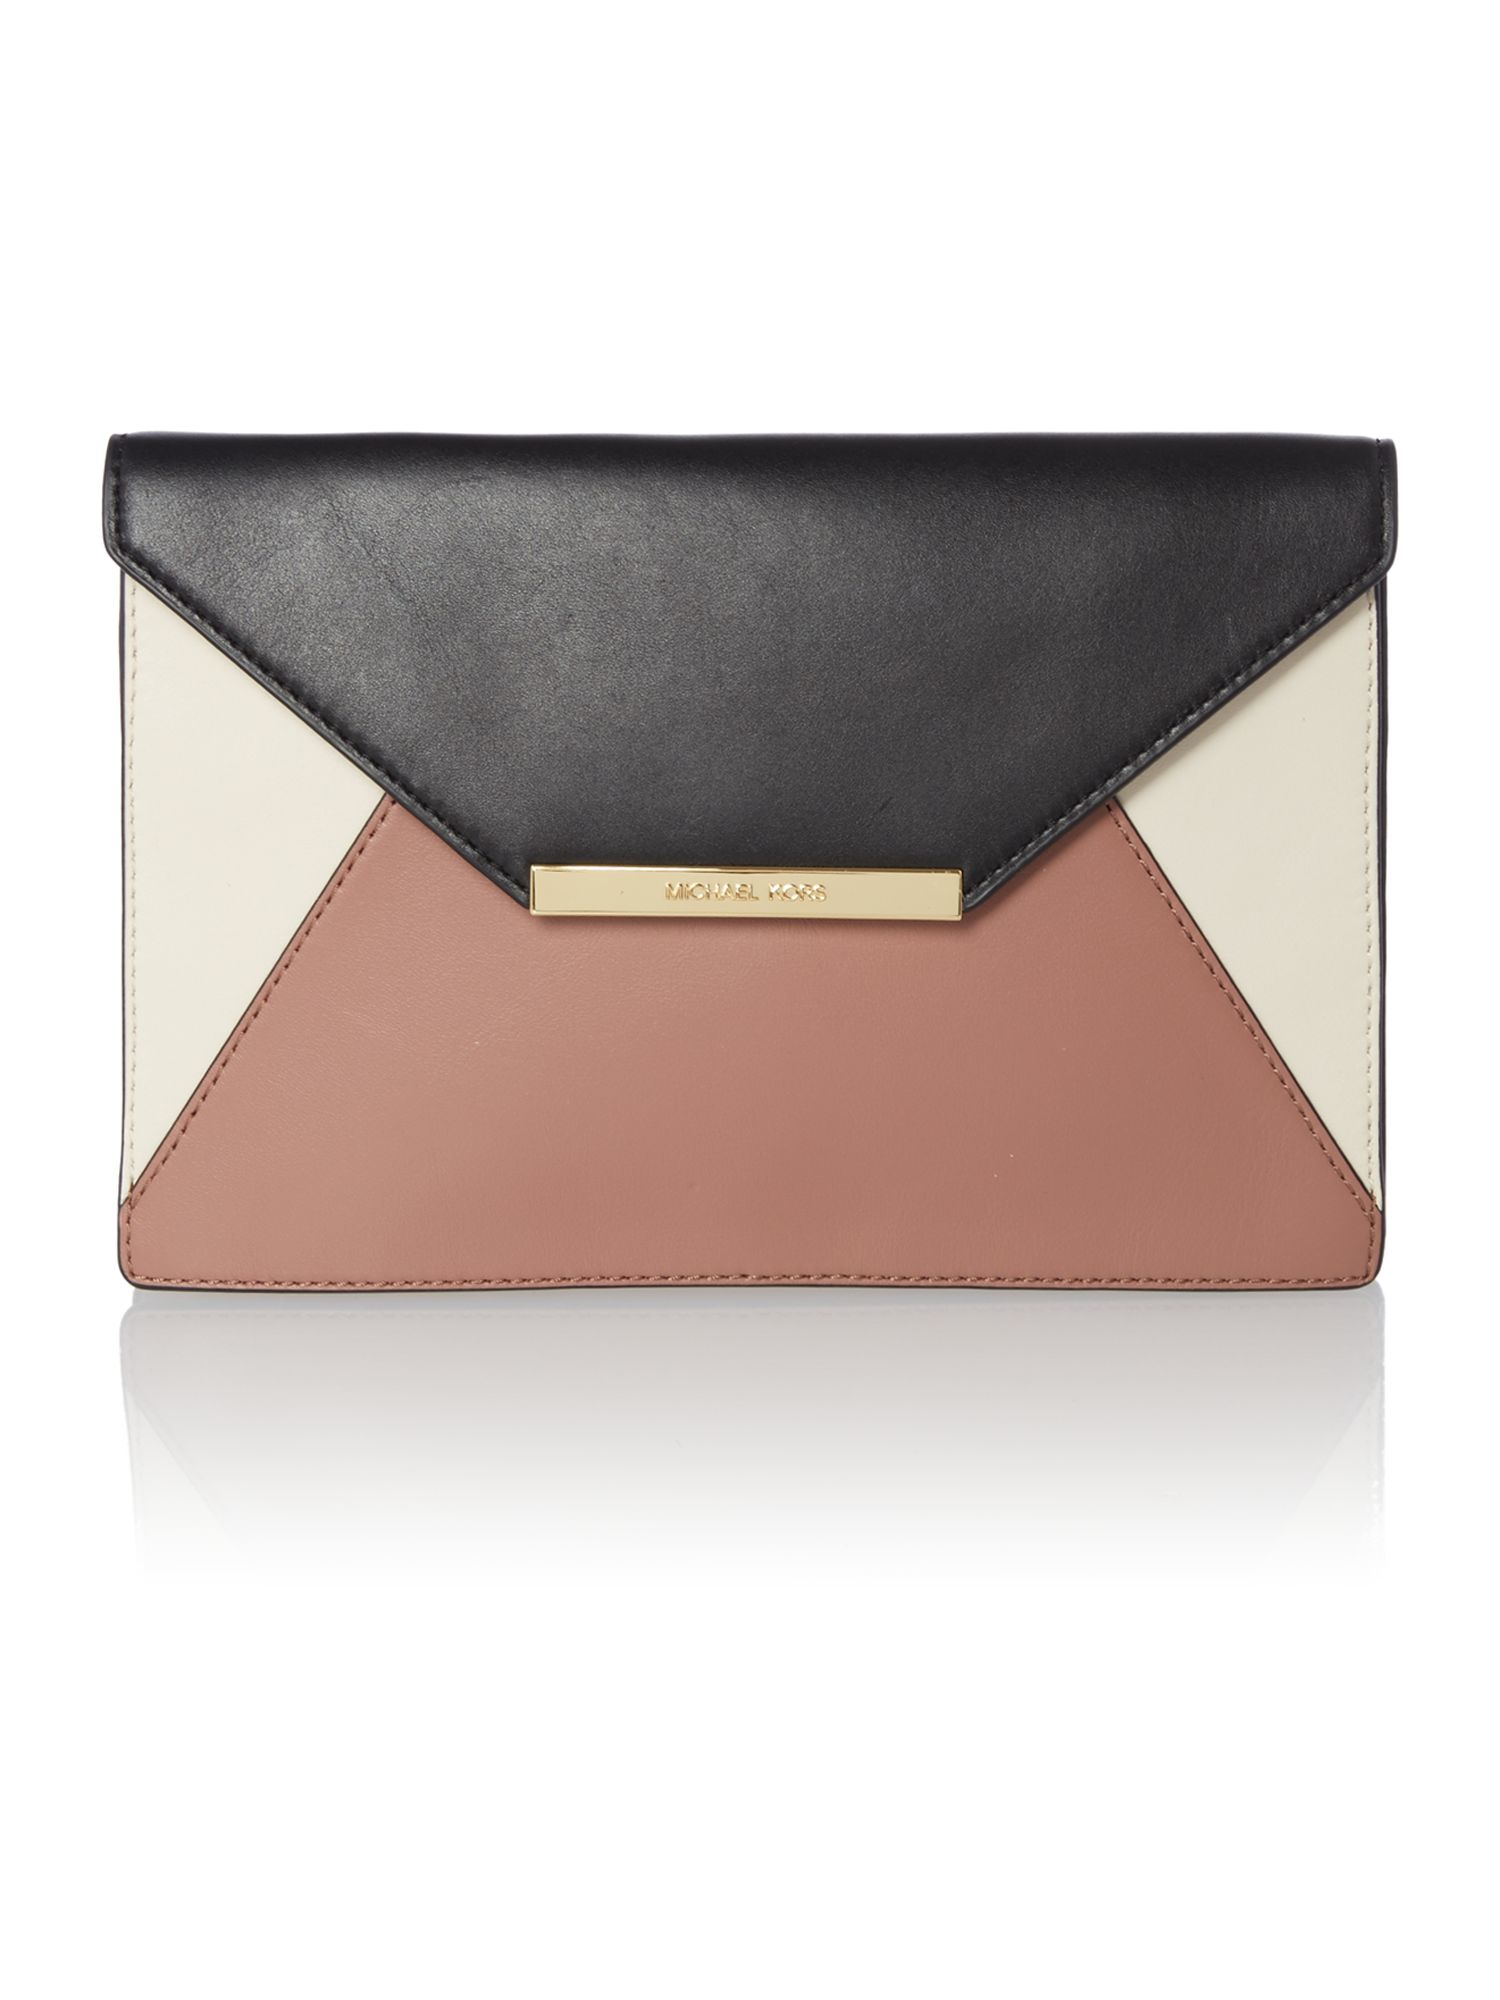 Michael kors Lana Multi Coloured Envelope Clutch Bag in ...